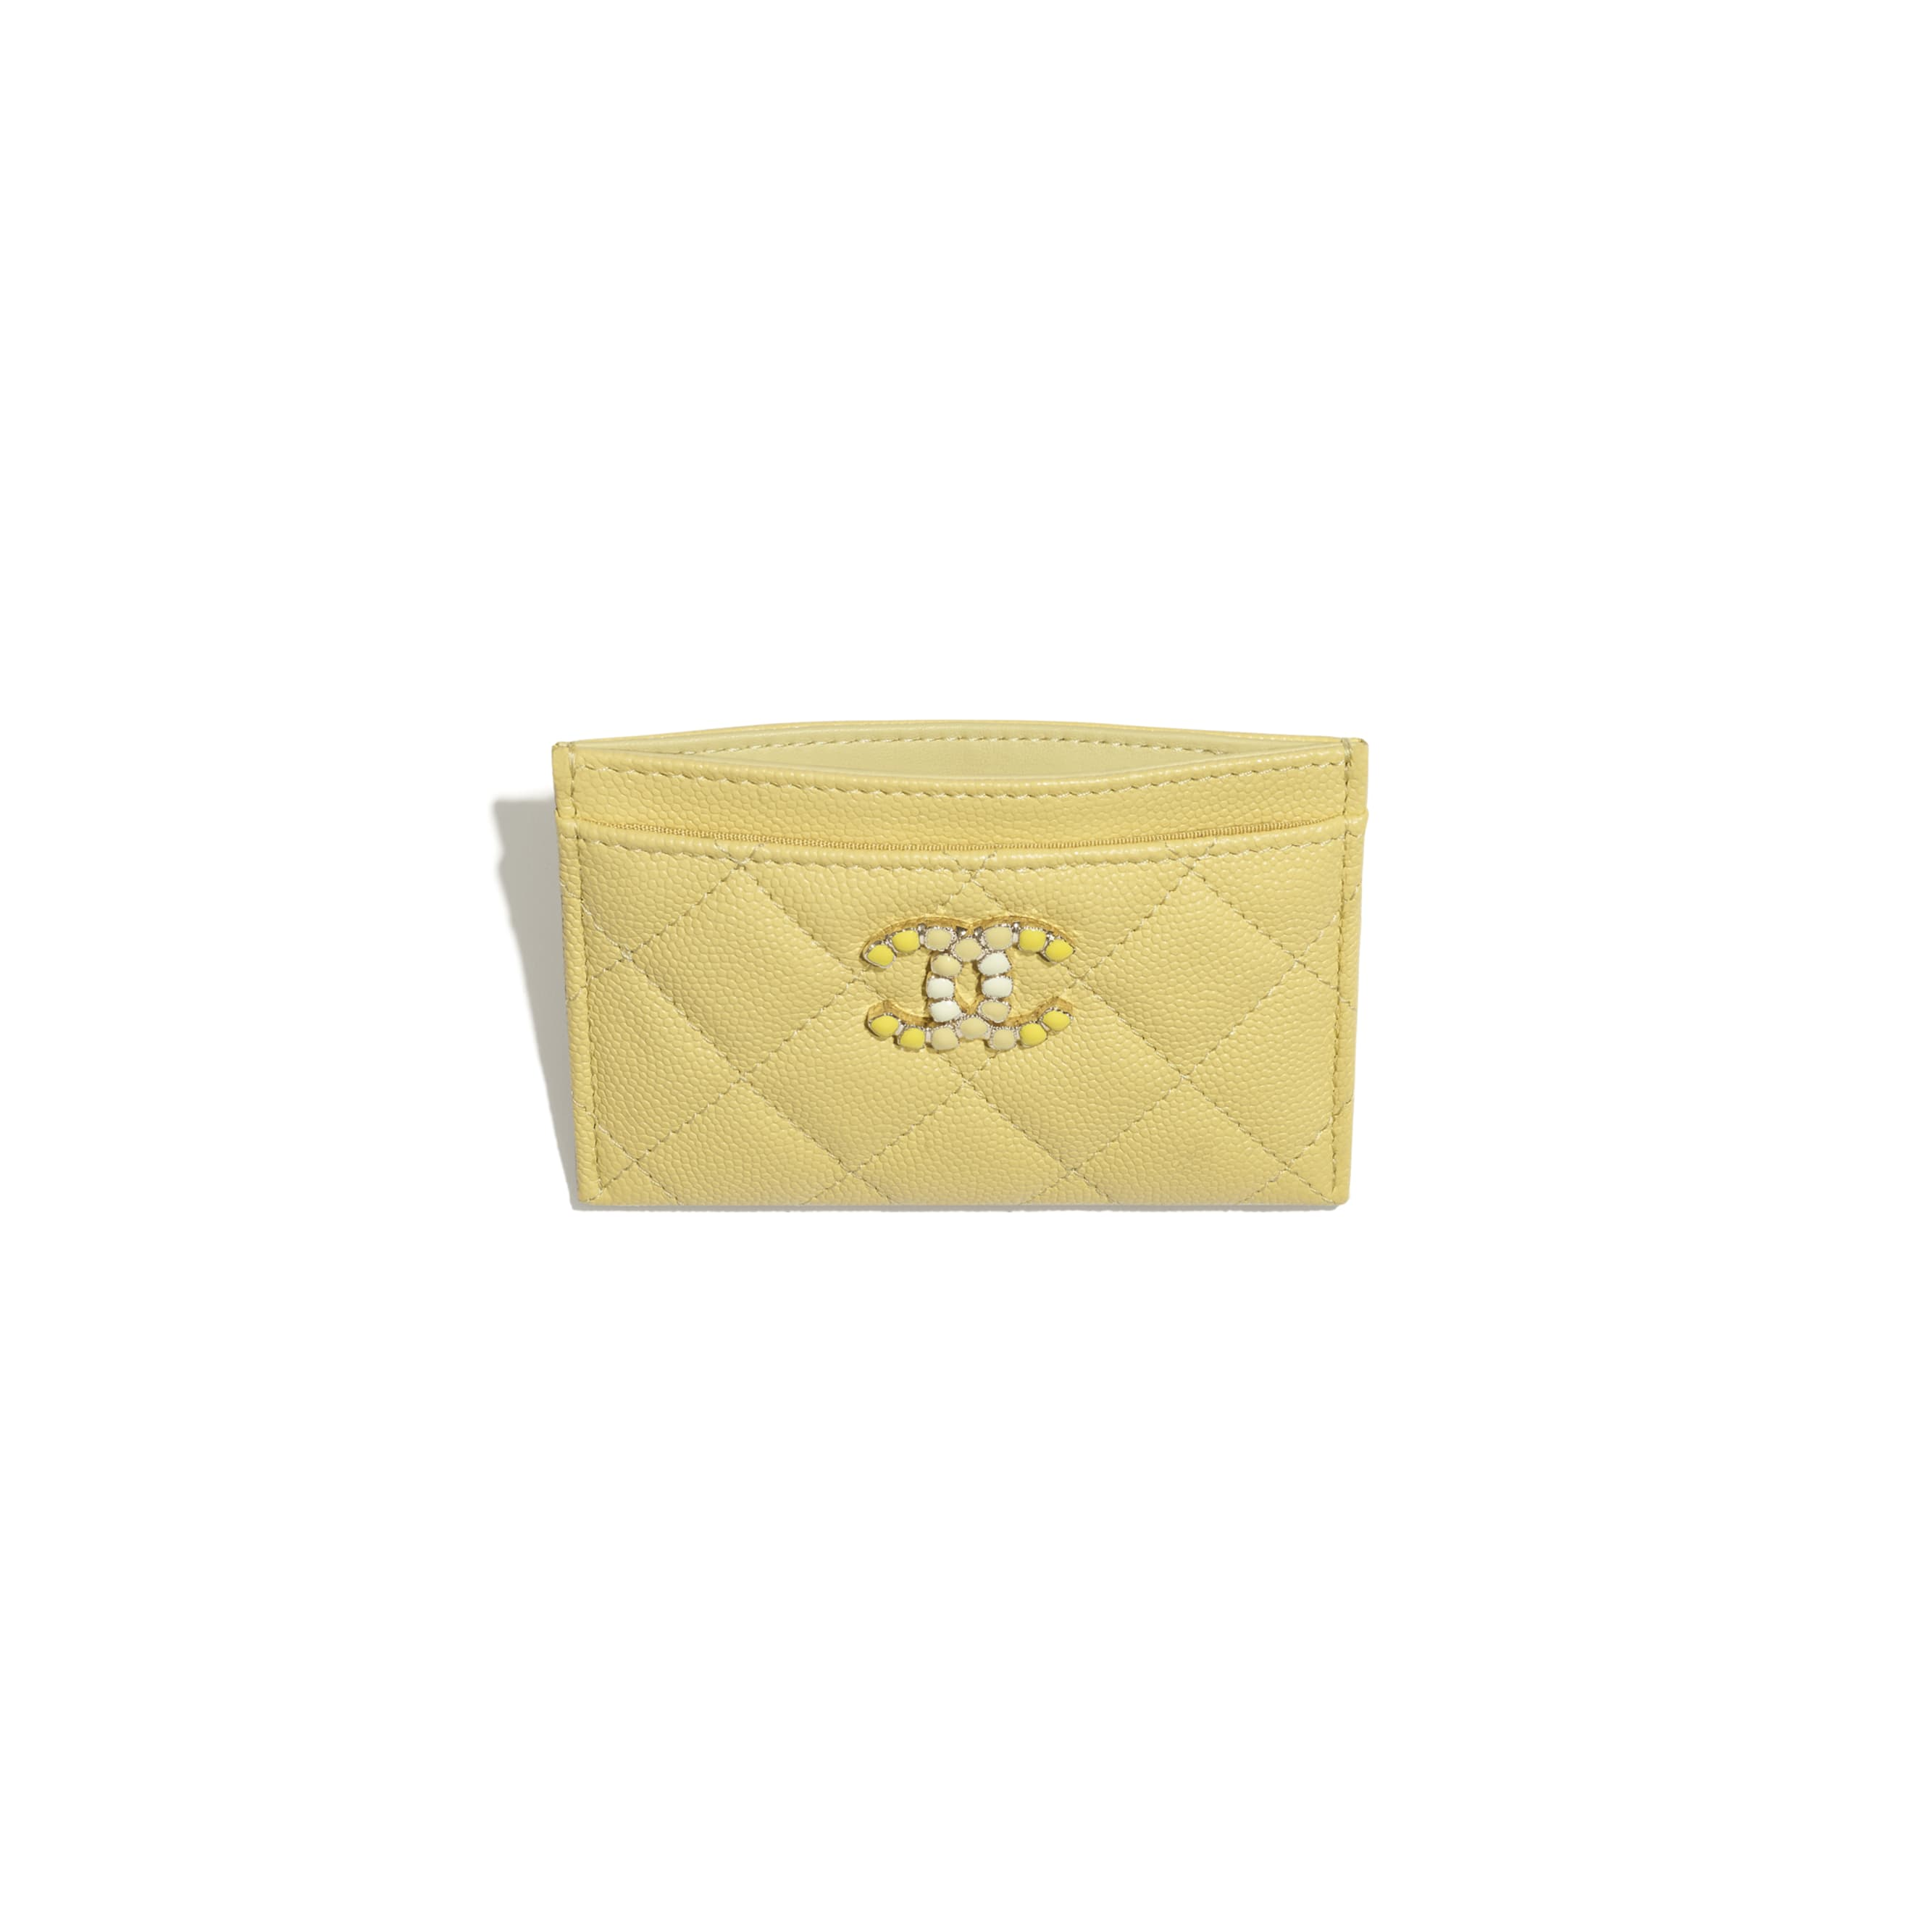 Card Holder - Yellow - Grained Calfskin & Laquered Gold-Tone Metal - CHANEL - Other view - see standard sized version